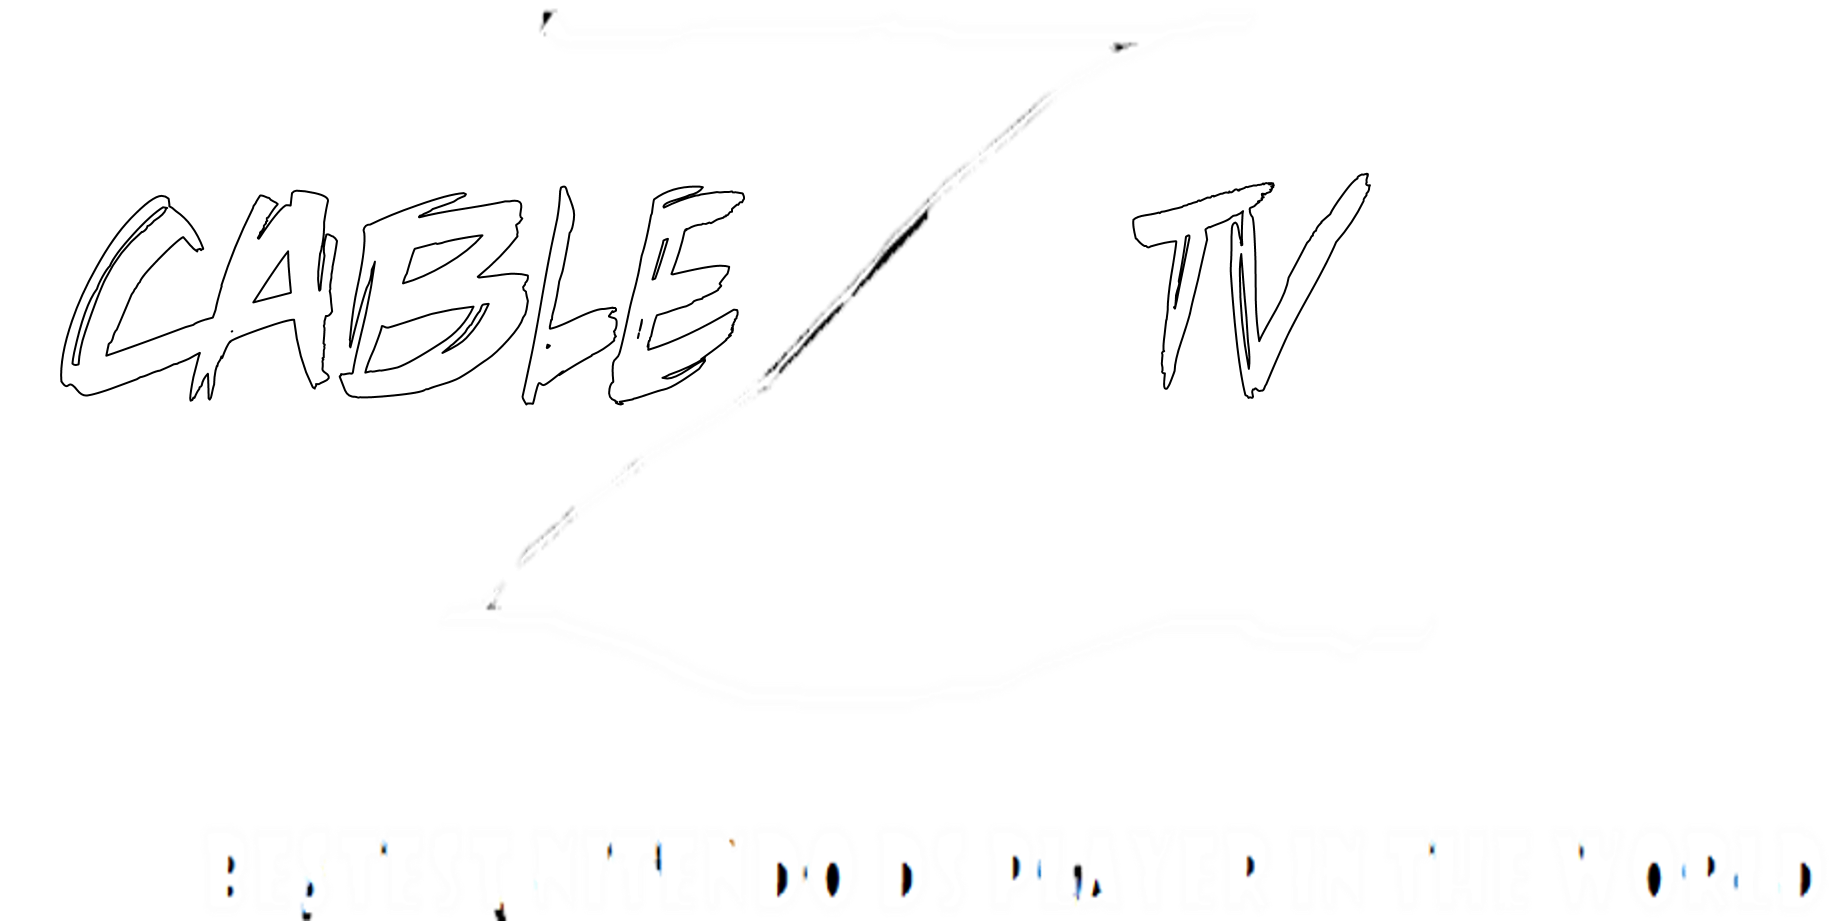 Beastest Nintendo DS Player In The World Cabel TV 2016- Logo